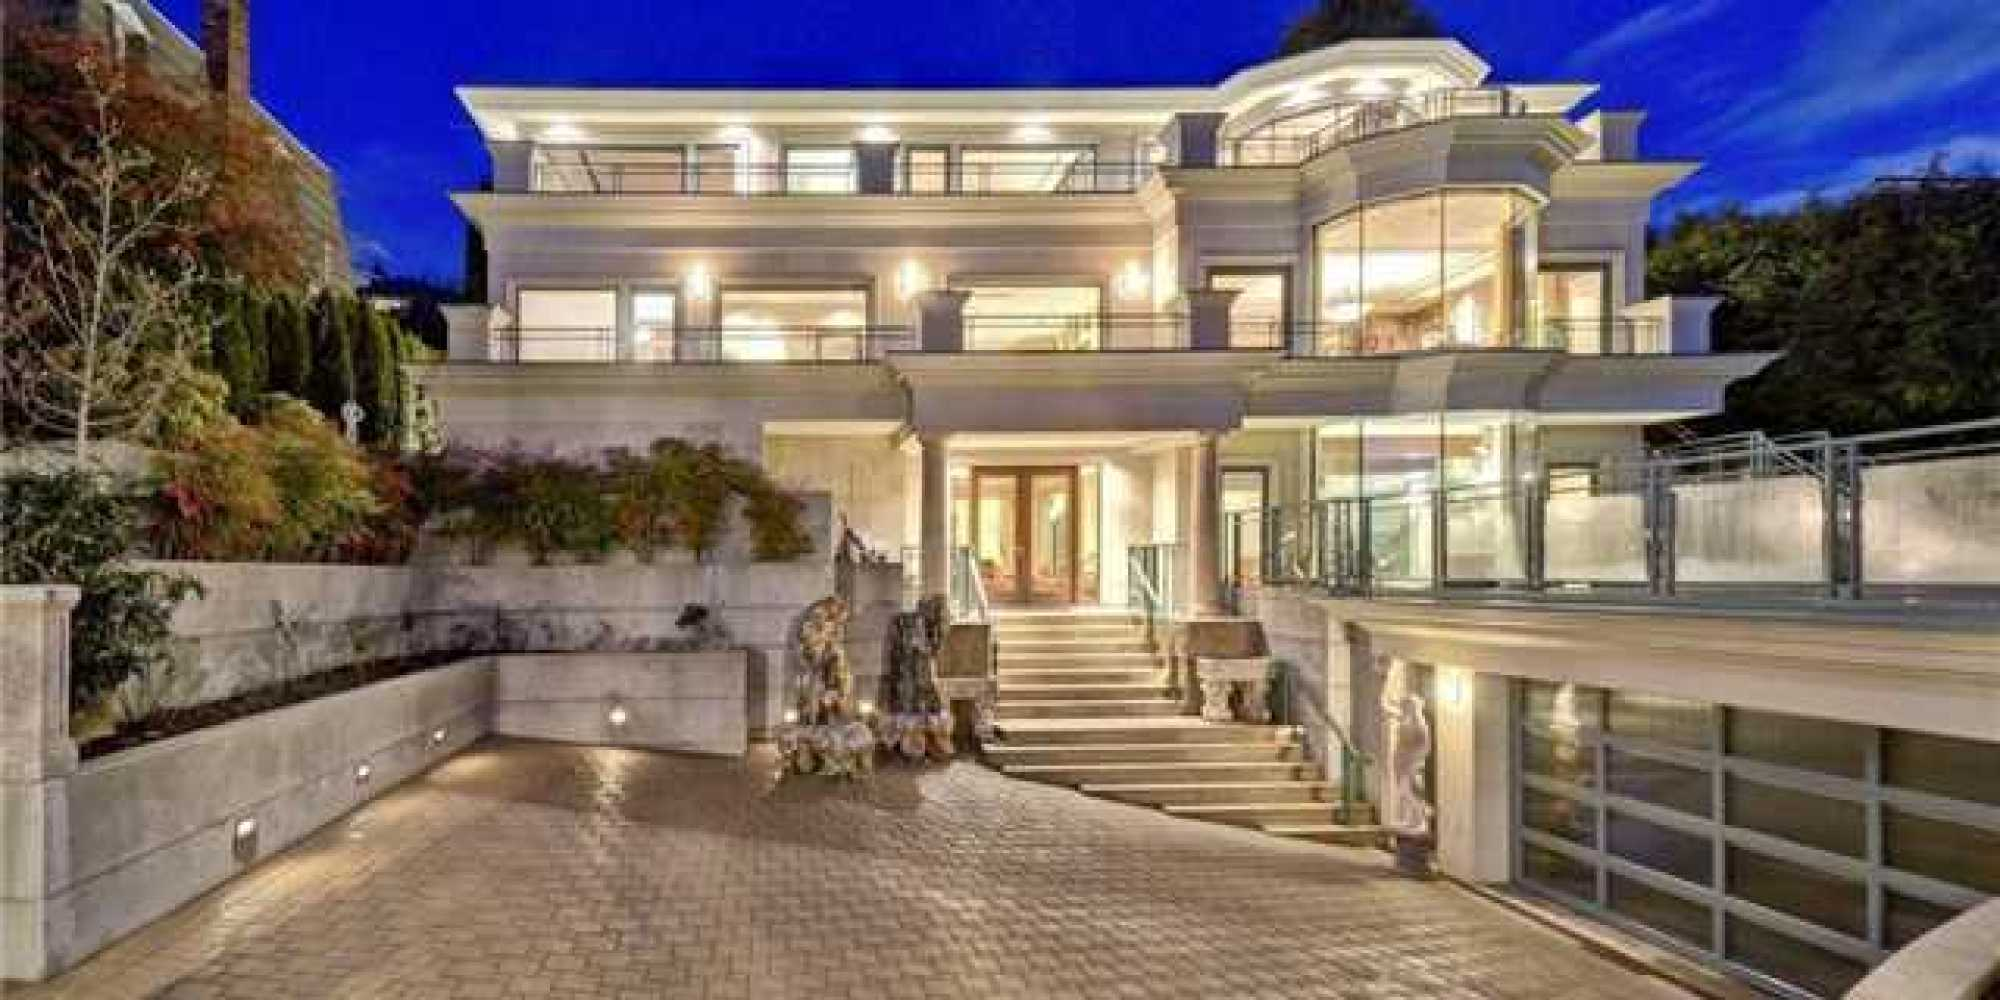 Most Expensive House In Vancouver December 2013 PHOTOS